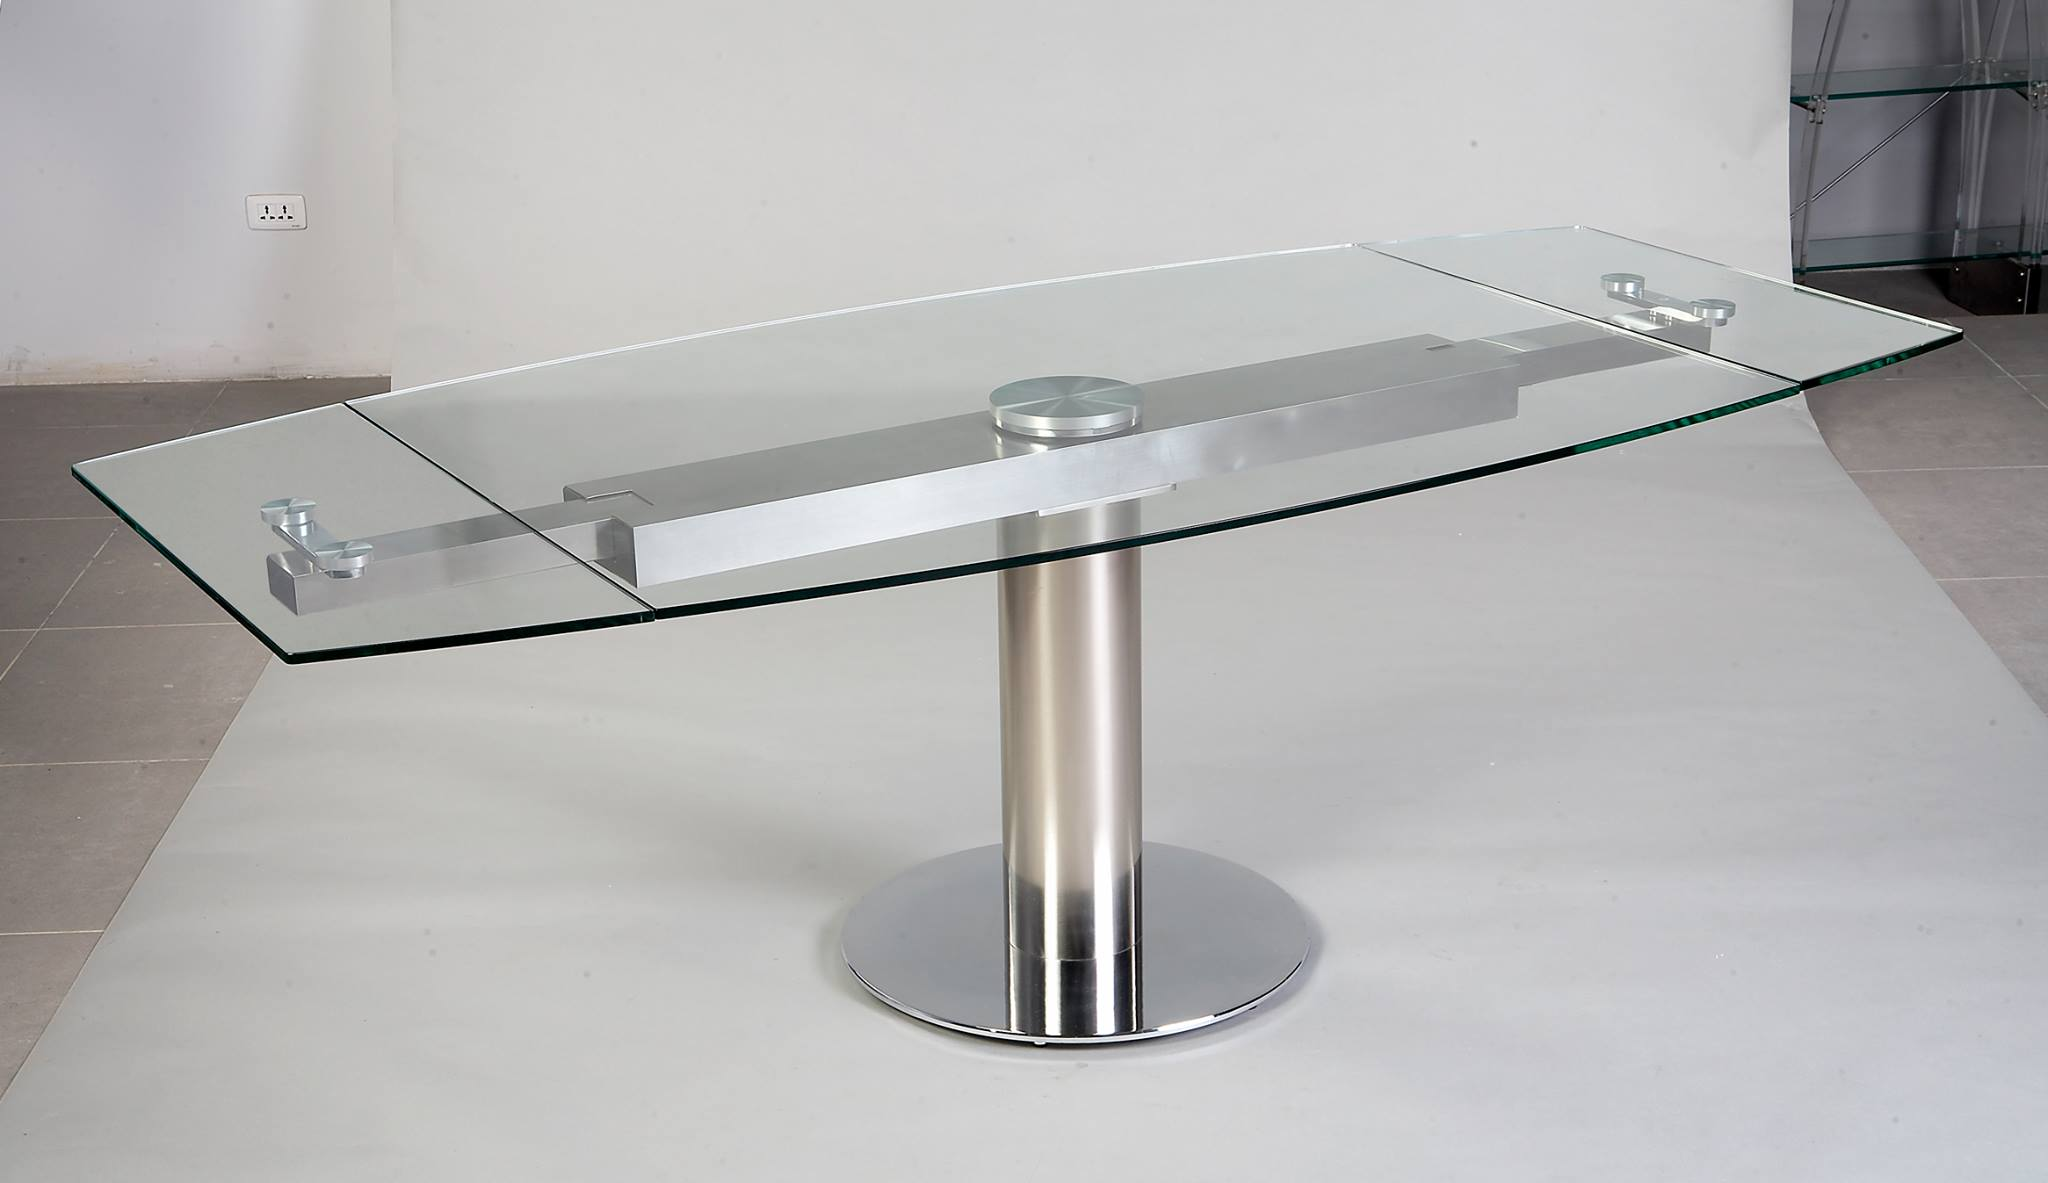 Table verre pied central allonge for Table en verre avec rallonge